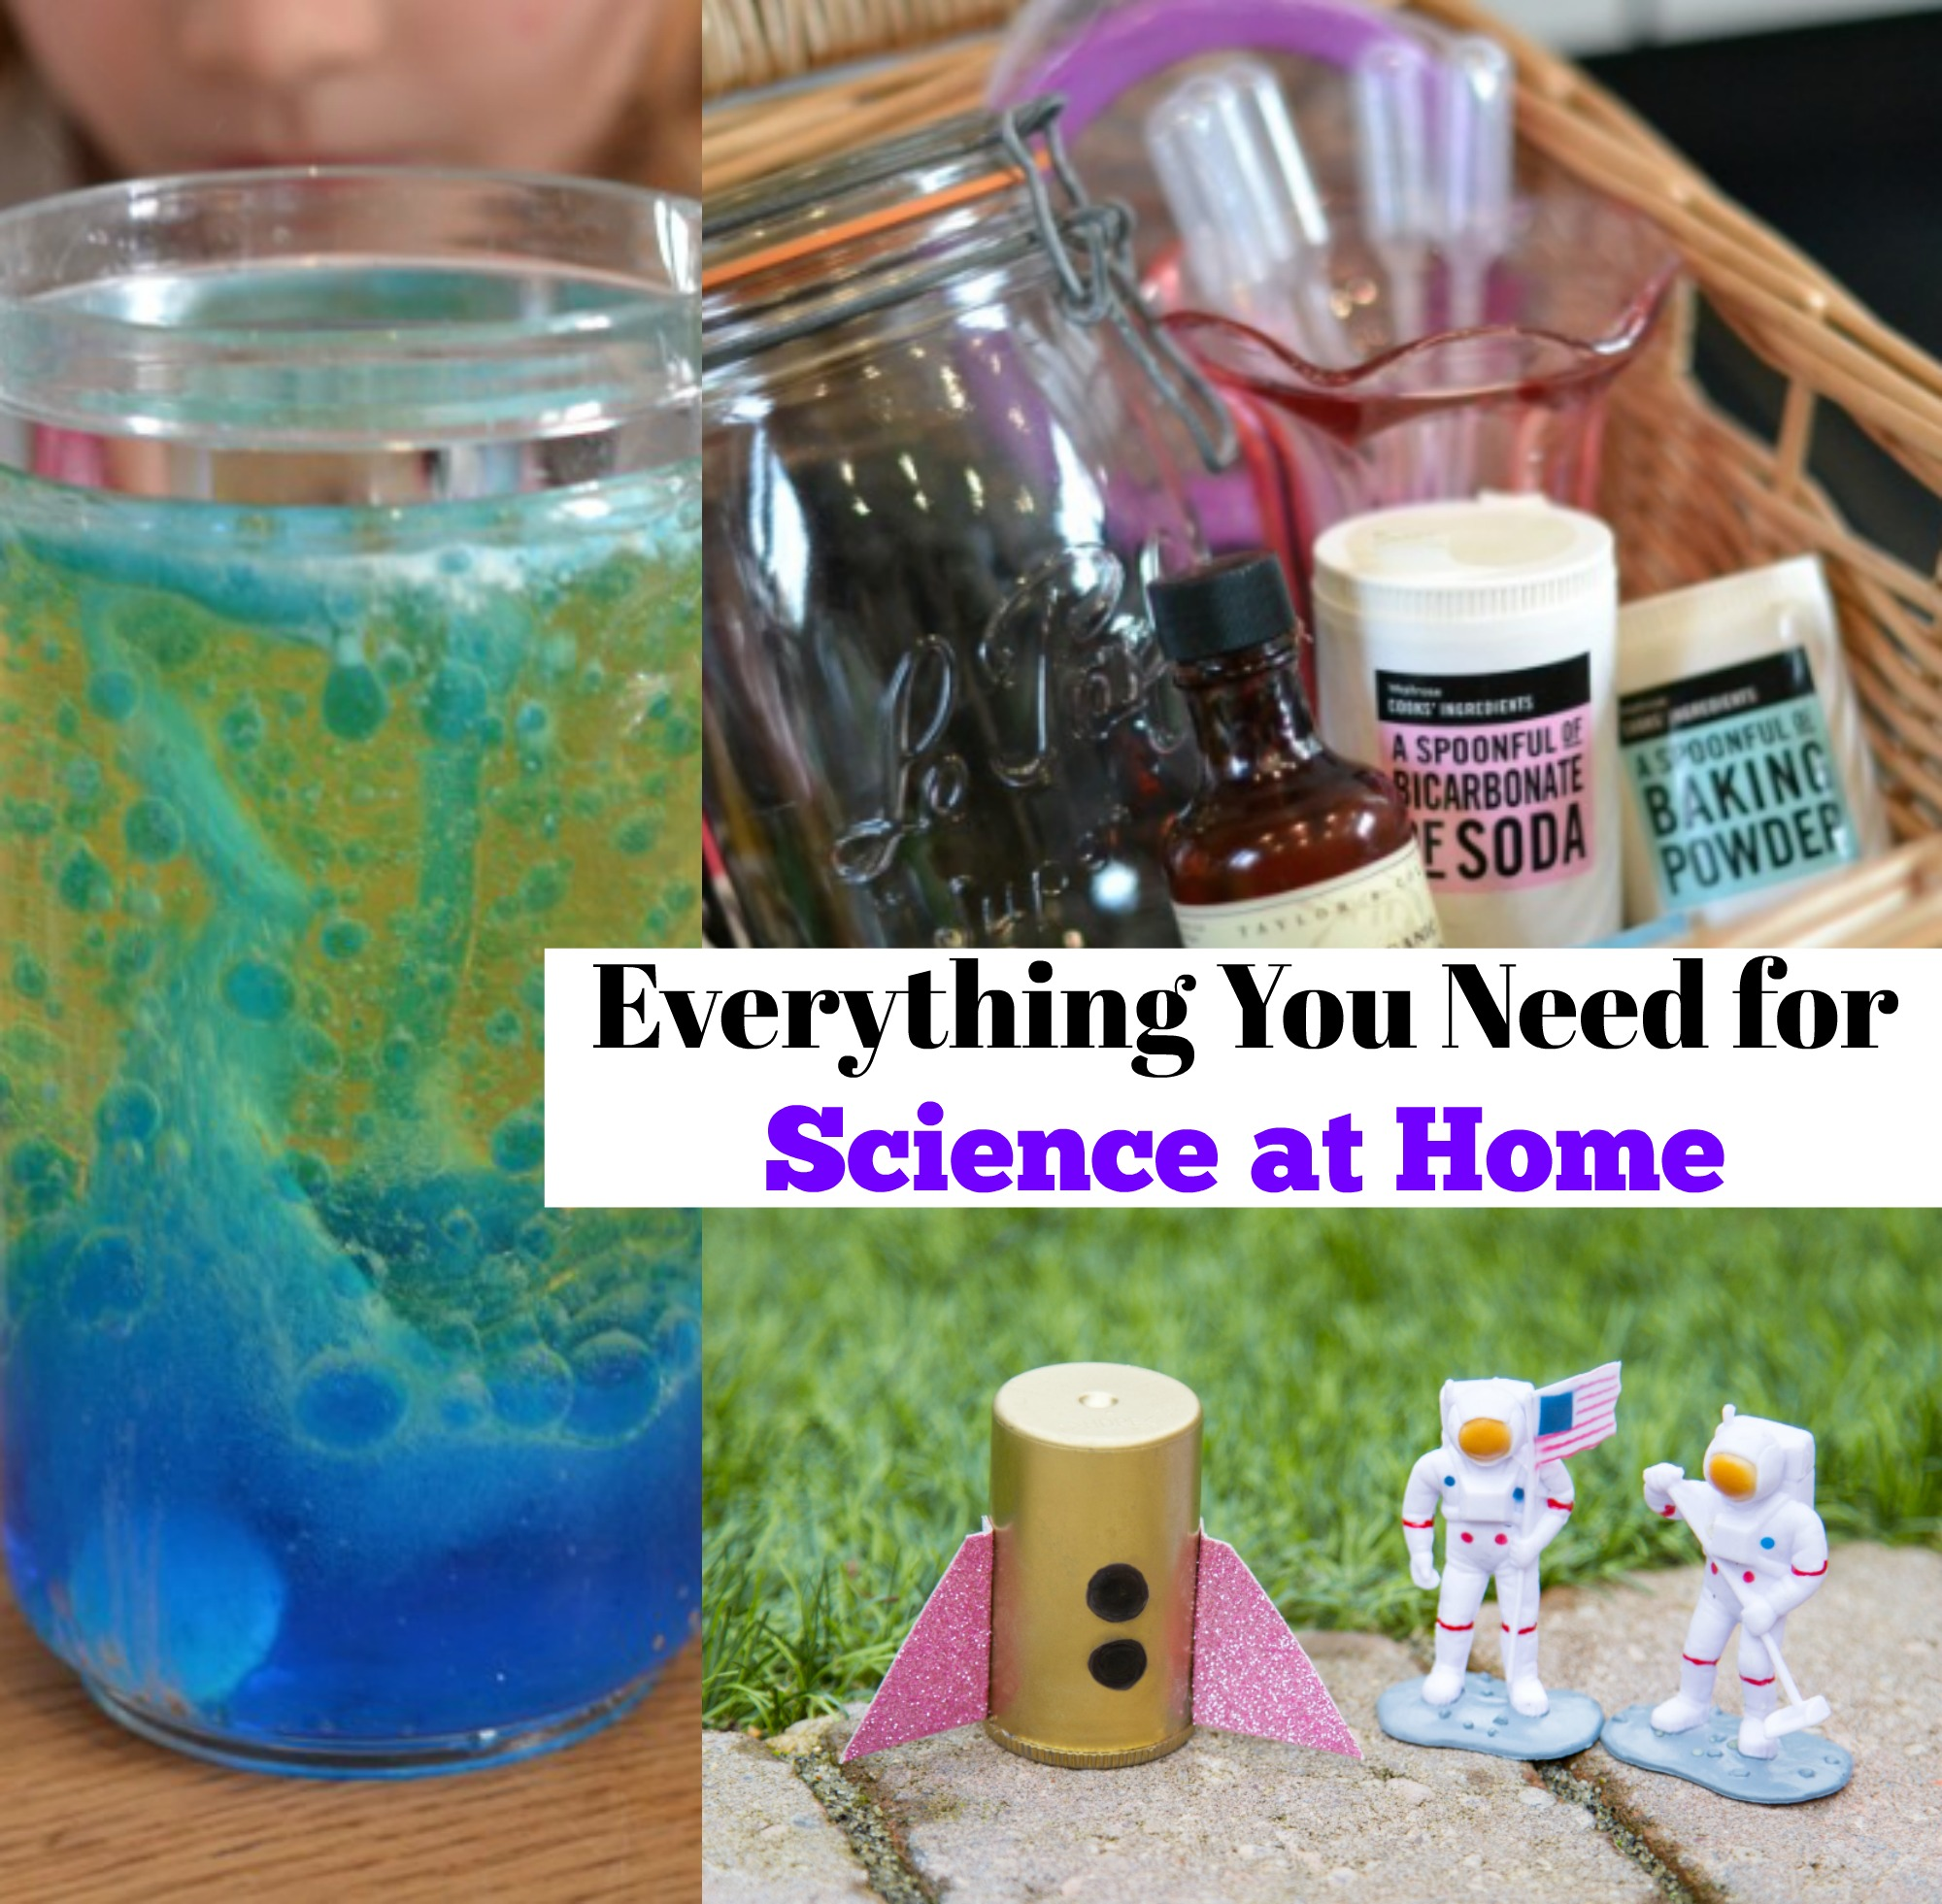 Everything you need for science at home - list of ingredients and resources for awesome science at home #scienceforkids #scienceathome